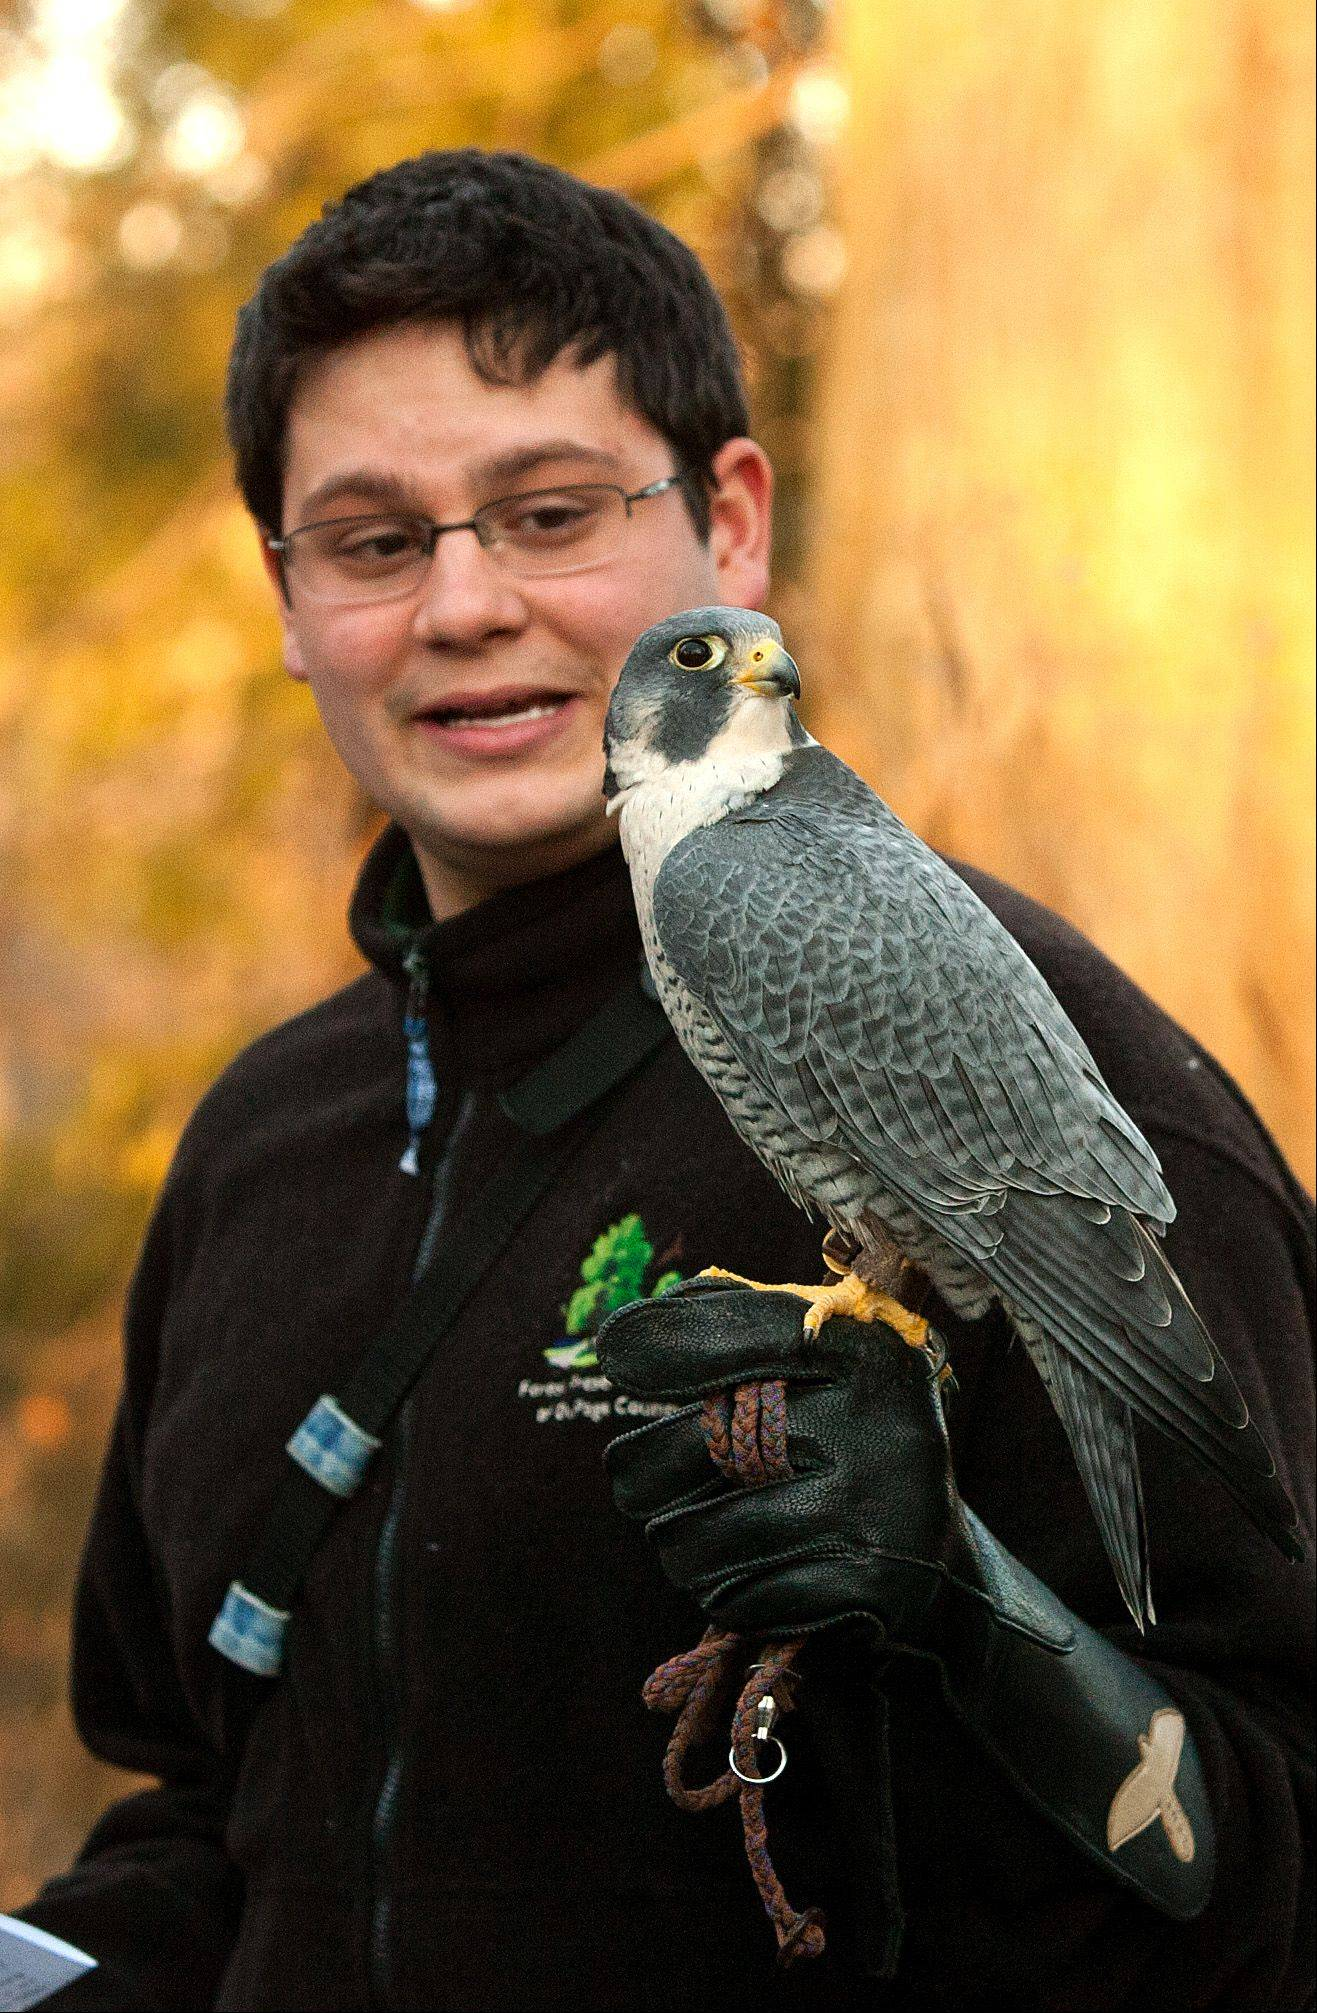 Jacob Shurba talks about peregrine falcons Saturday during a program at the Willowbrook Wildlife Center commemorating the 40th anniversary of the signing of the Endangered Species Act.